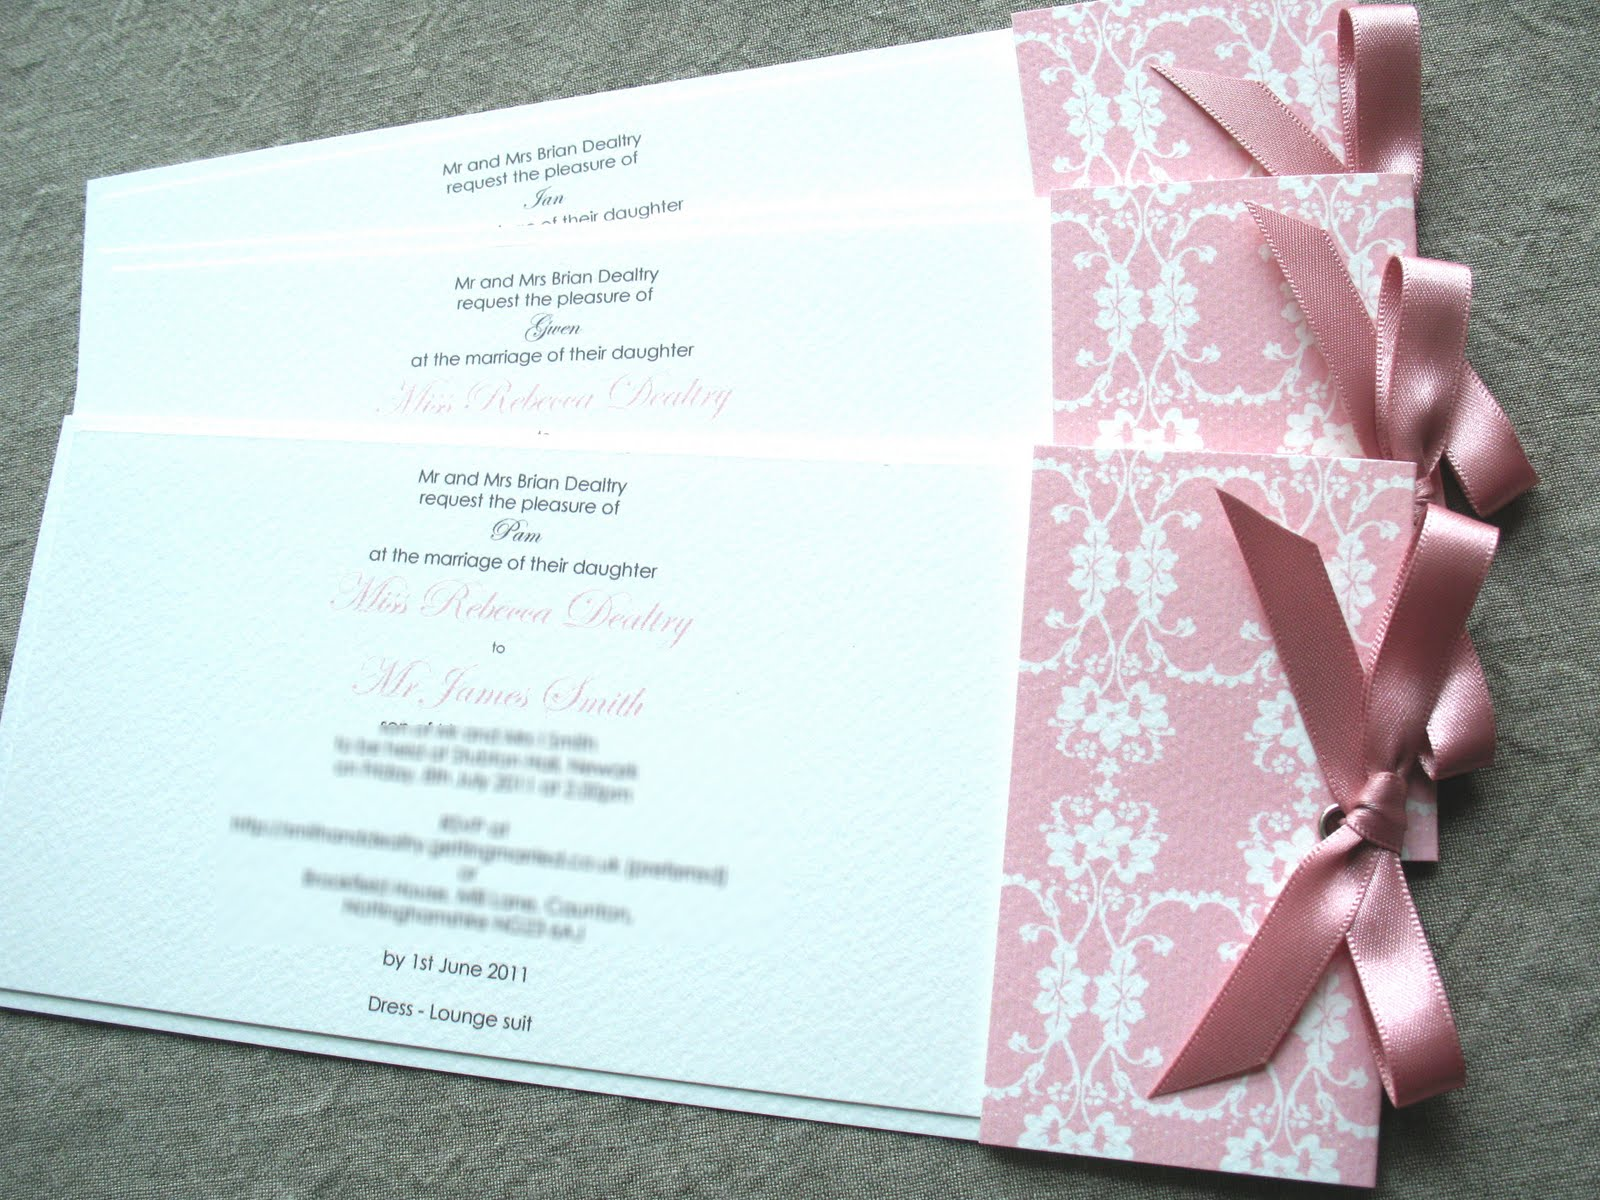 Inspiration for weddings, invitations and stationery: day/evening ...